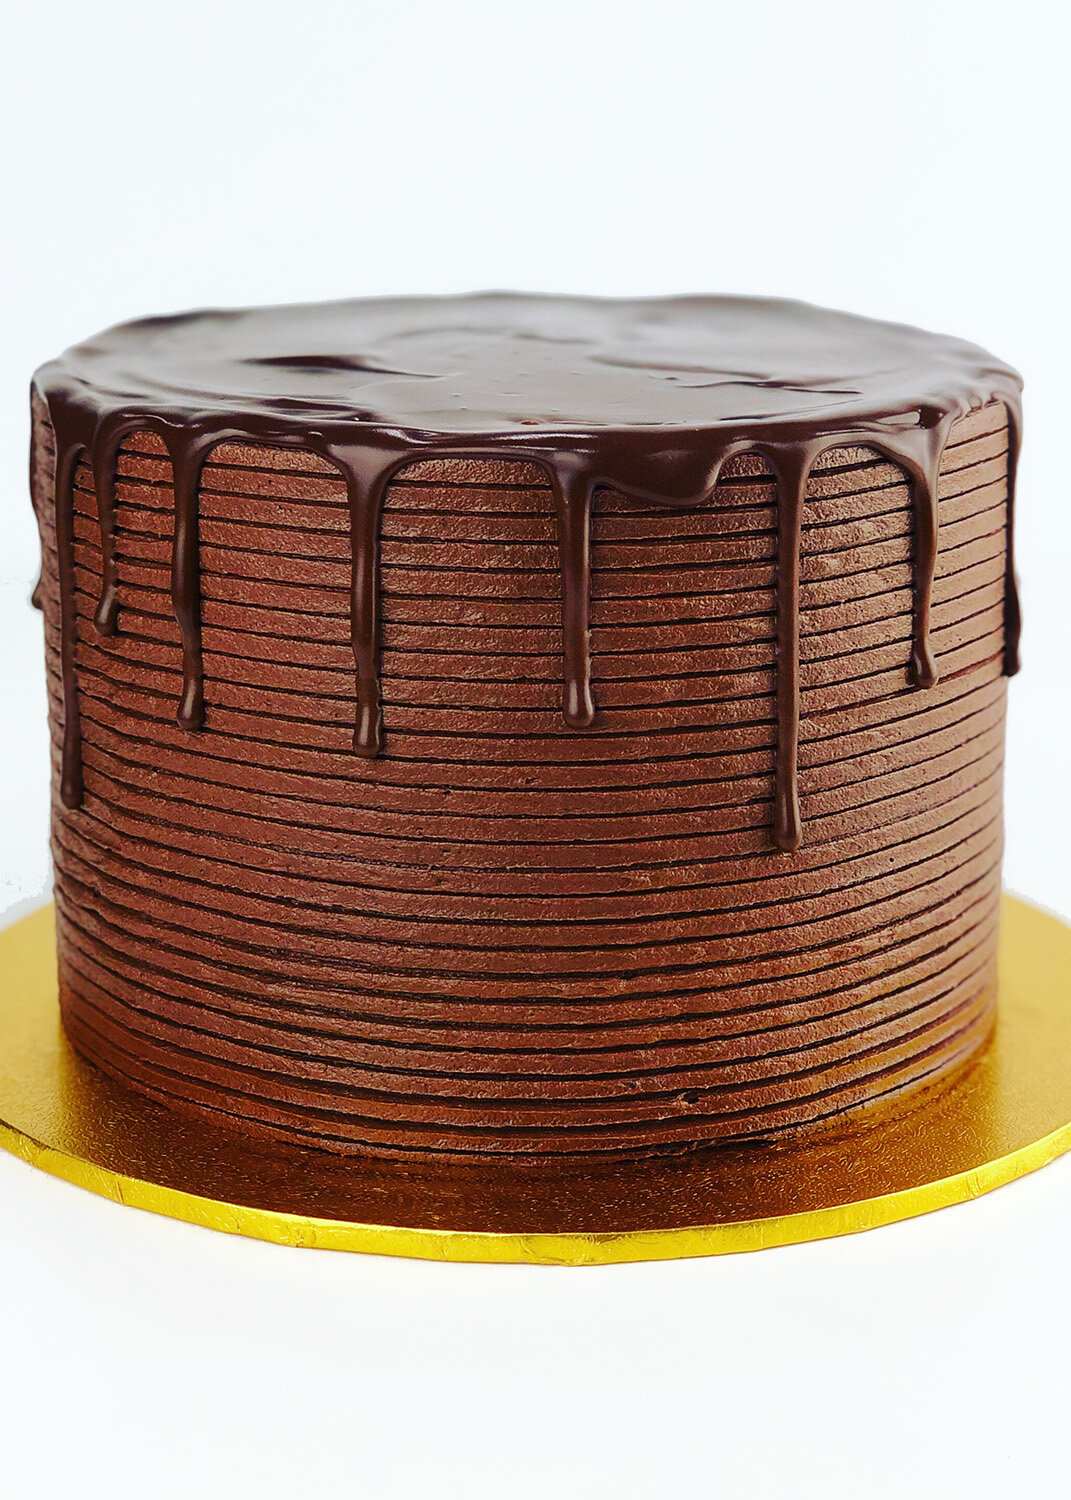 - Everyday Cakes - our sweet and simple range of basic cakes